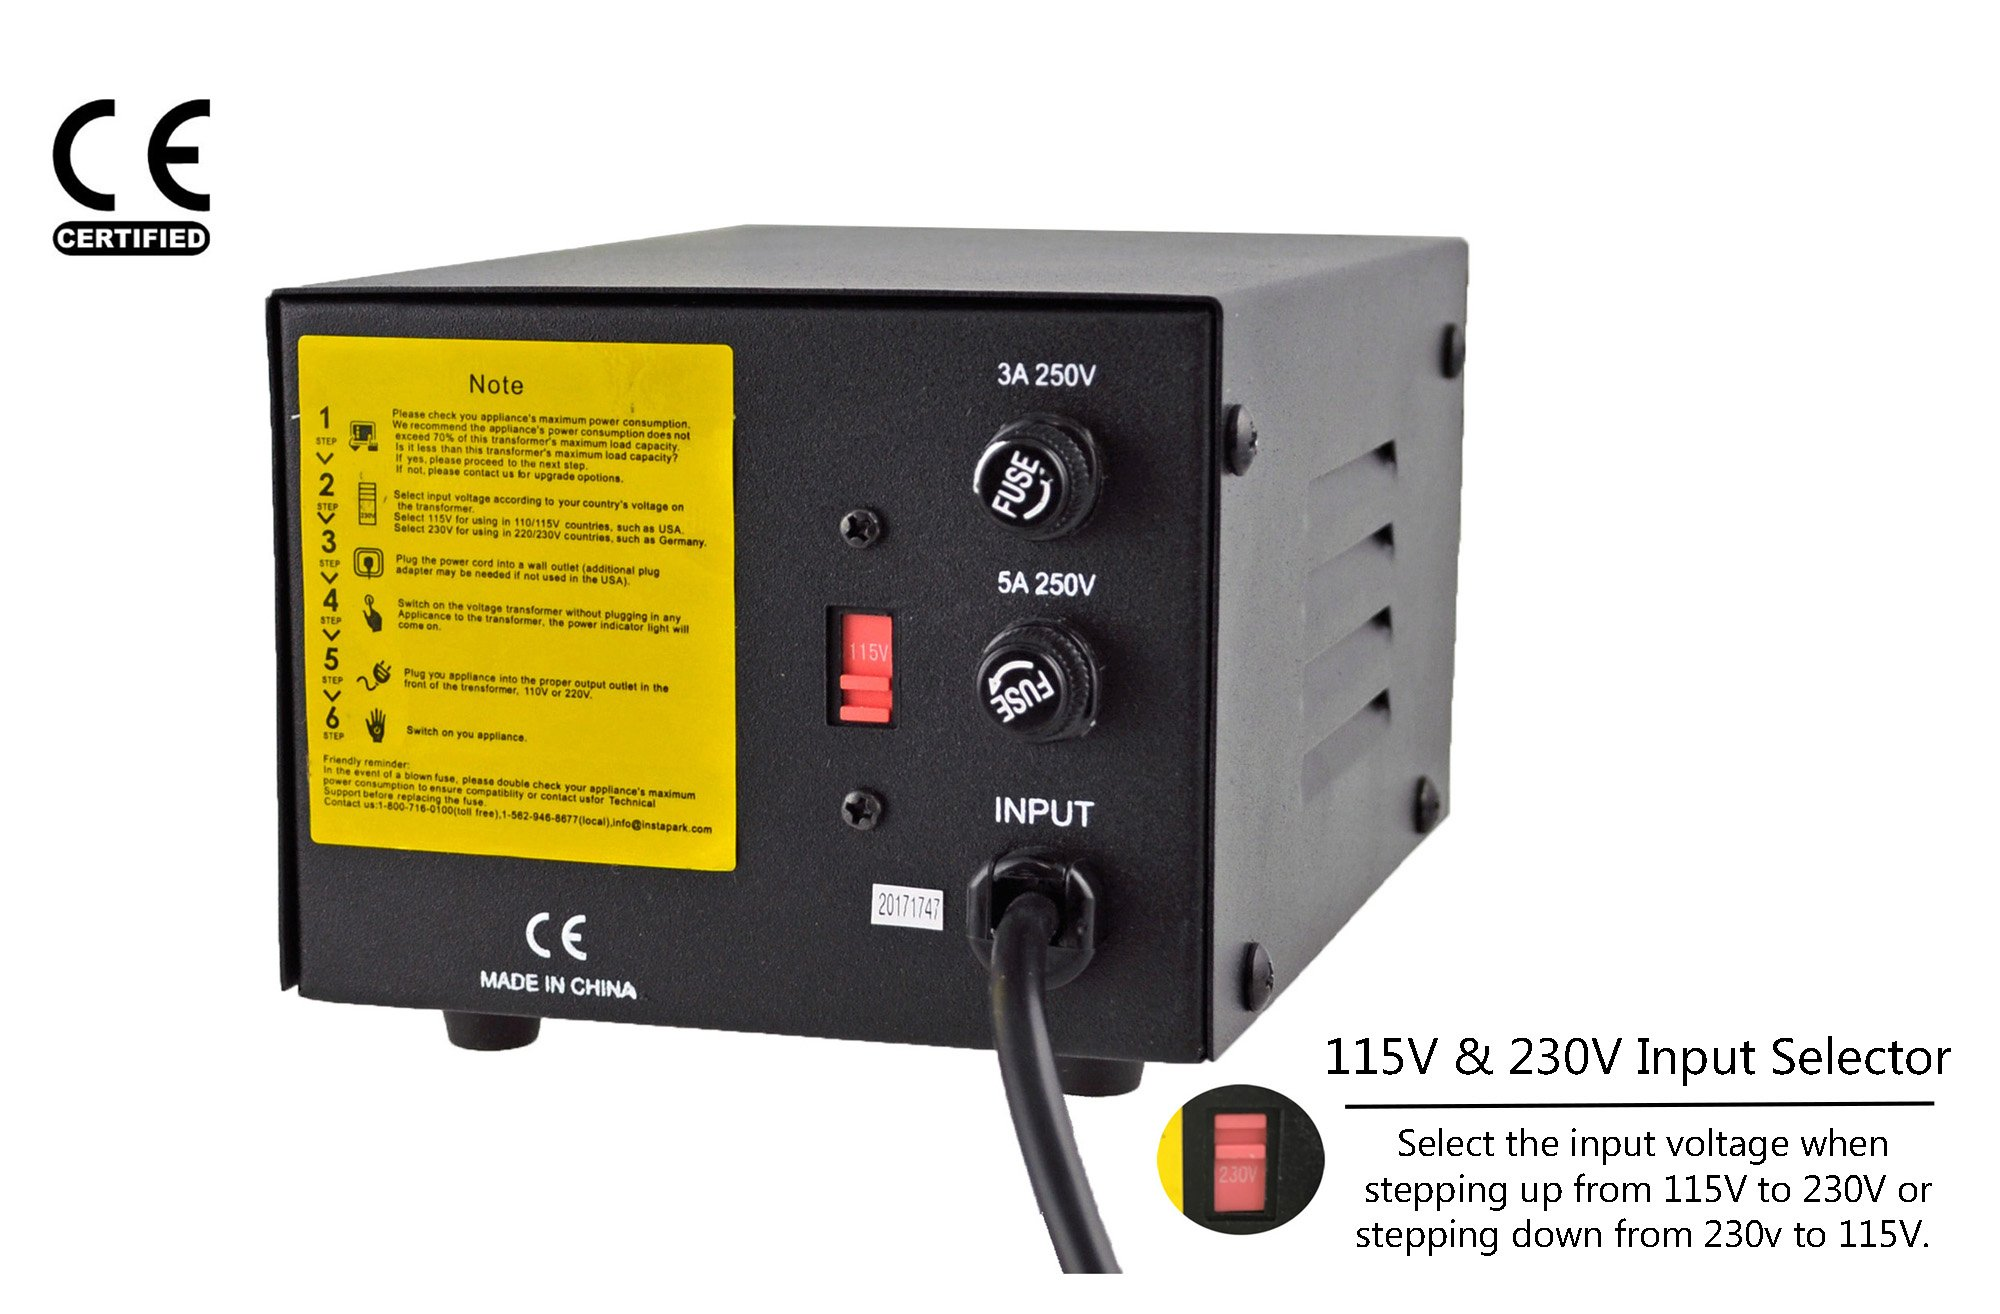 Instapark ITU-500 Voltage Converter: AC 110V / 220V 500W Step-up and Step-Down AC Voltage Transformer with Maximum Load Capacity (MLC) - 500 Watts by Instapark (Image #2)